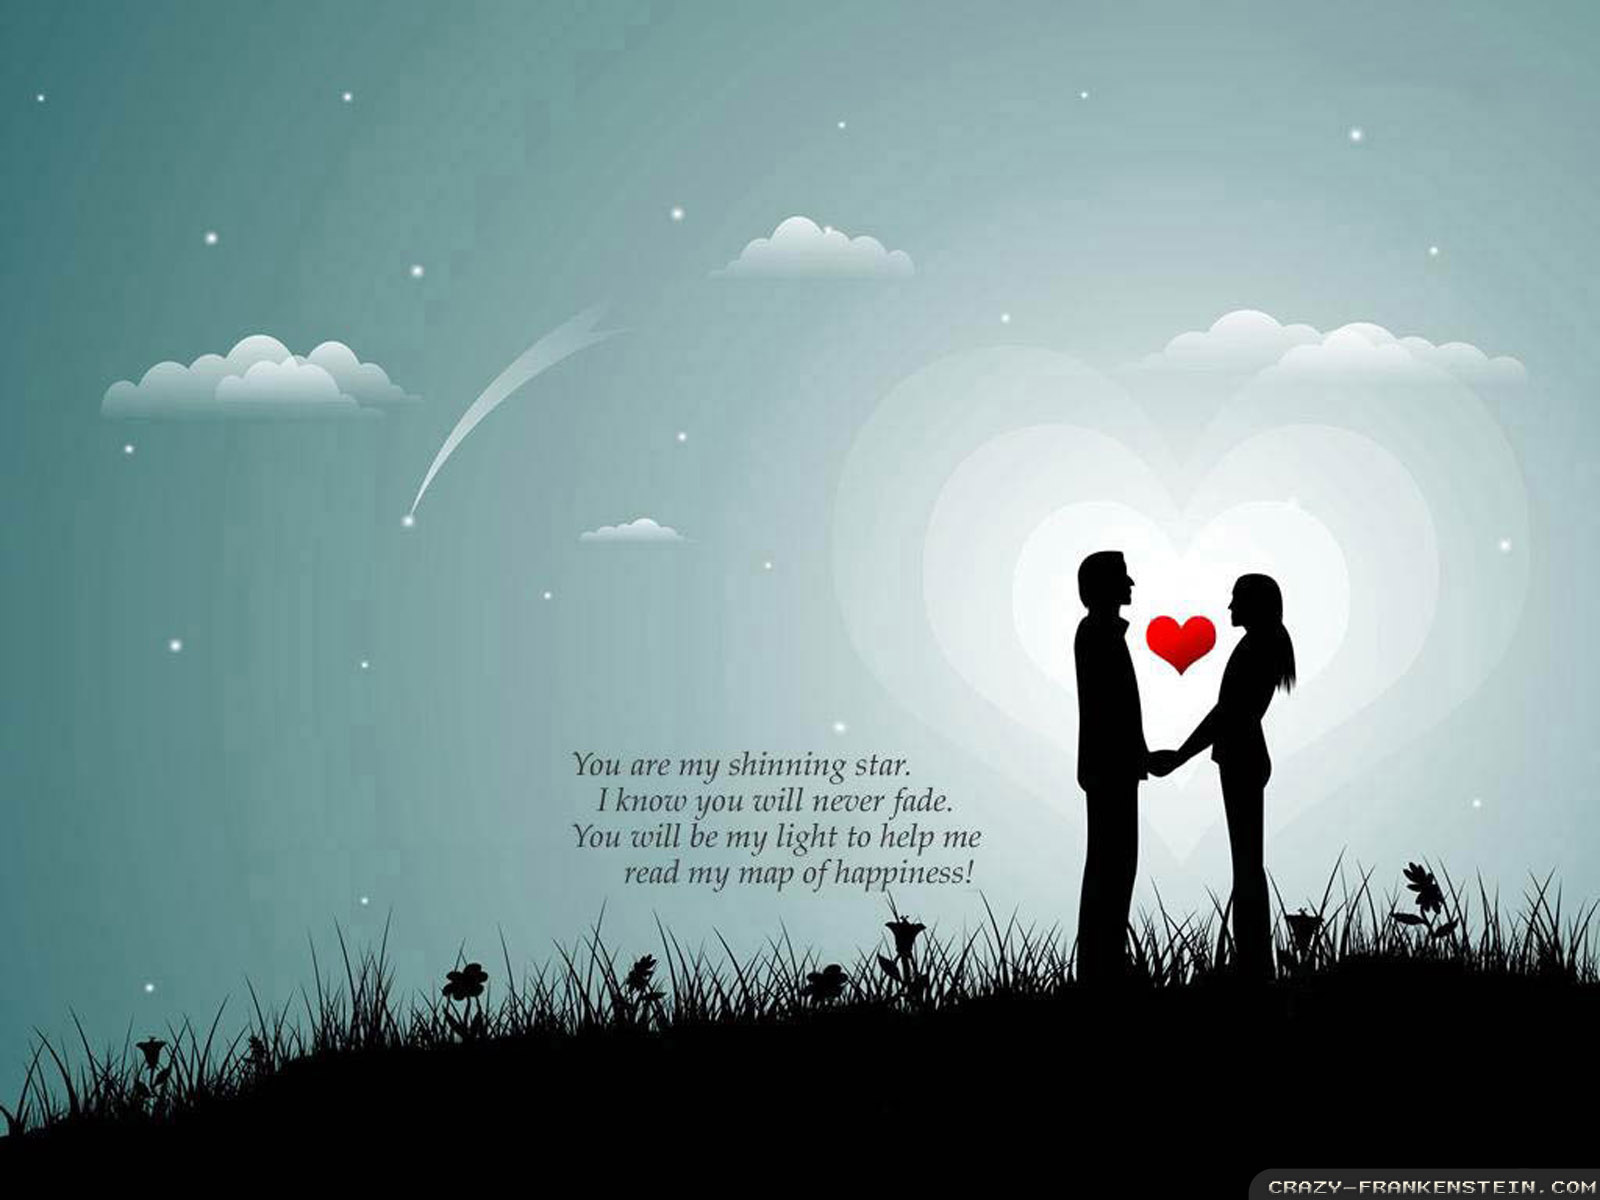 http://1.bp.blogspot.com/-5bTGYncS67Q/Tg6-YPqprAI/AAAAAAAABlA/lk-e7DtX3MY/s1600/my-star-love-quote-wallpapers-1600x1200.jpg